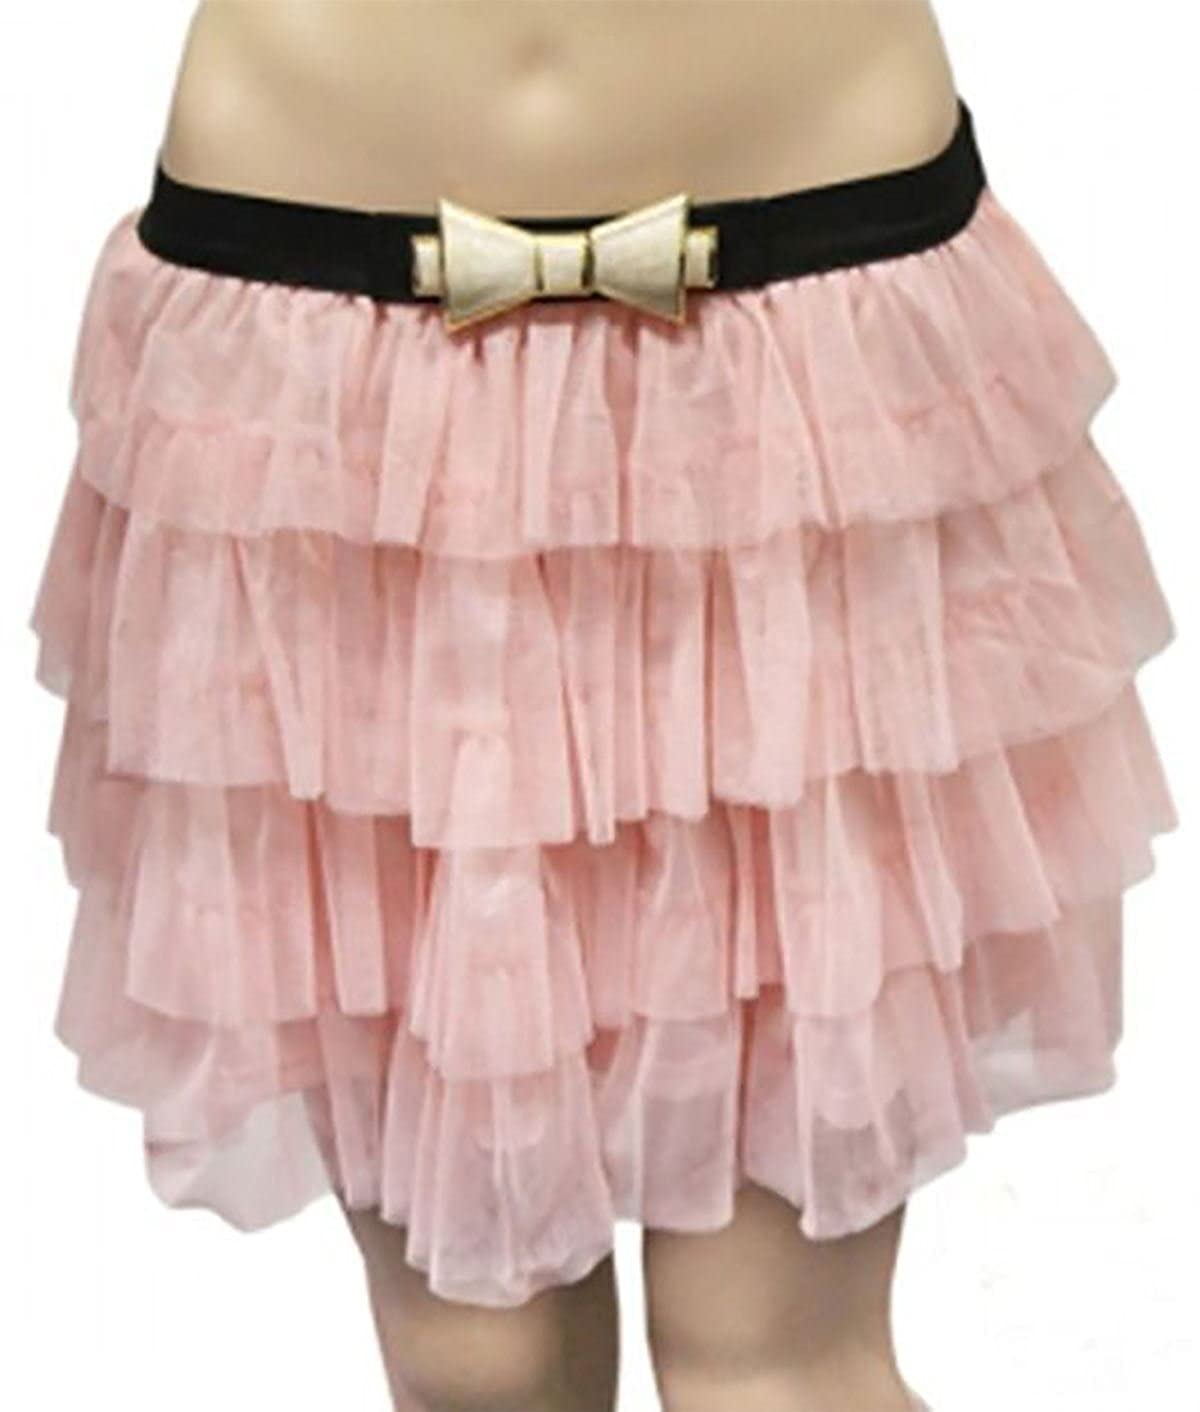 Islander Fashions Womens Crazy Chick 2 Capas Mesh Tiered Tutu ...